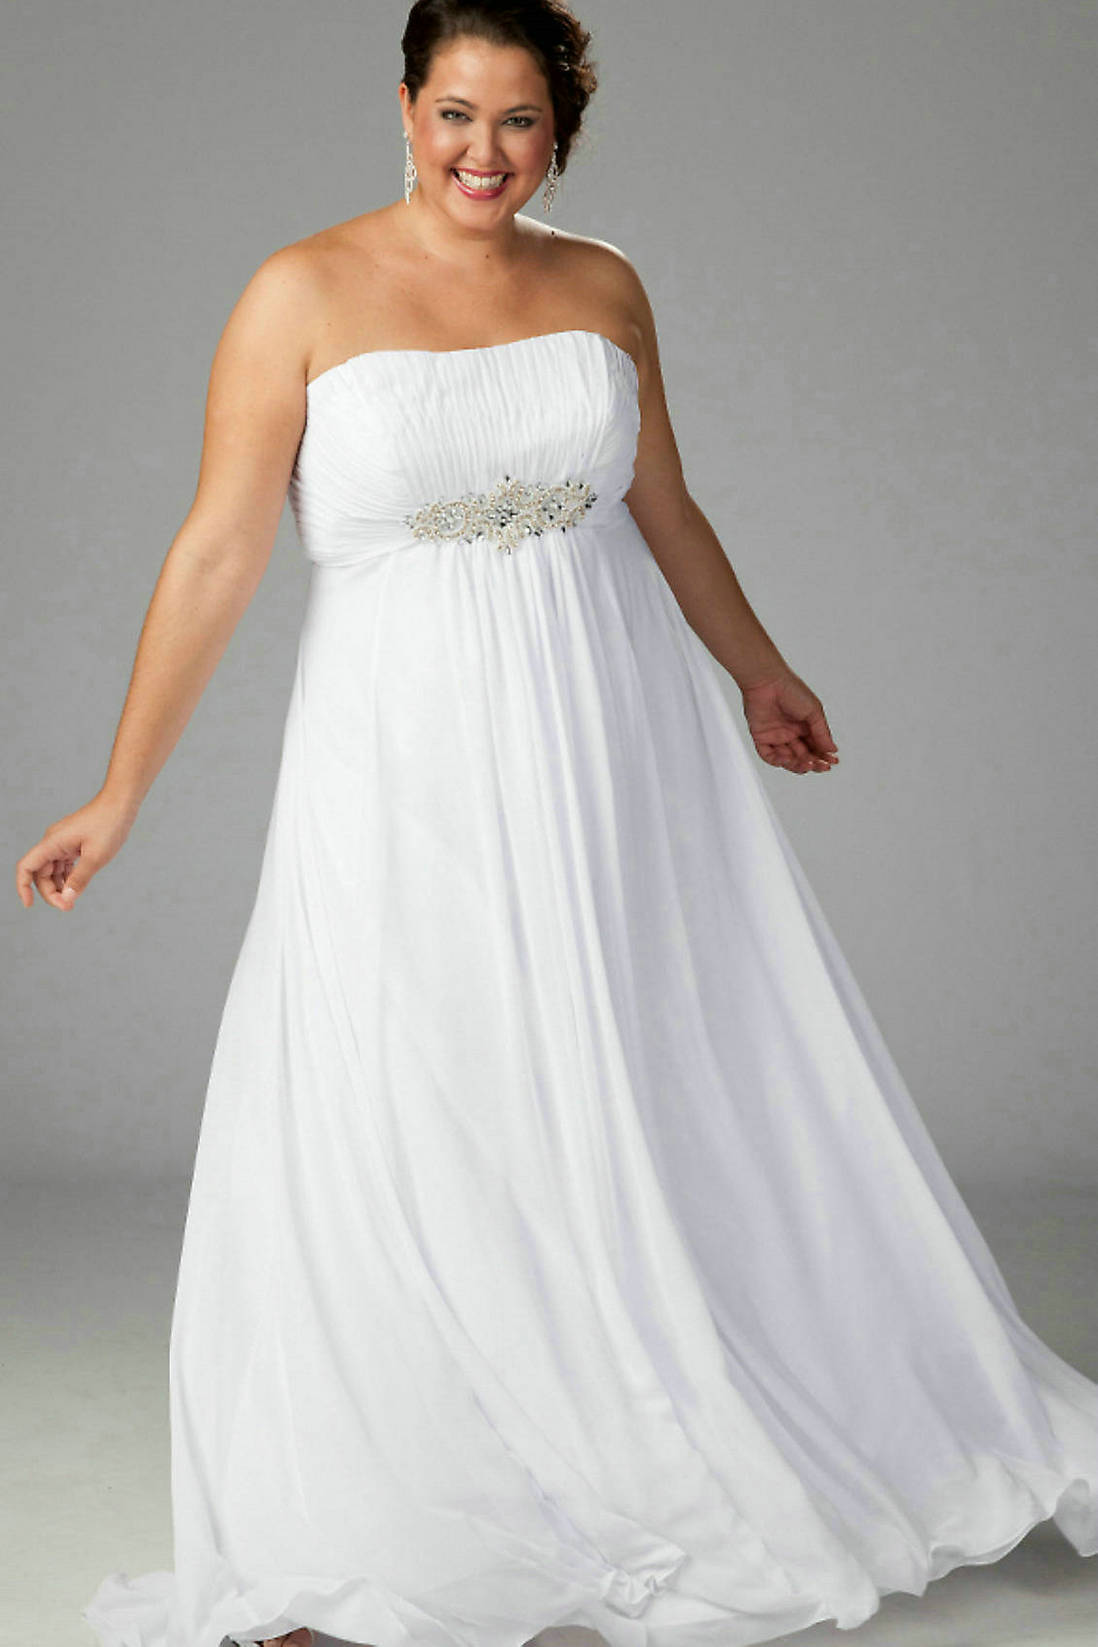 White Strapless Maxi Dress Plus Size – Fashion dresses